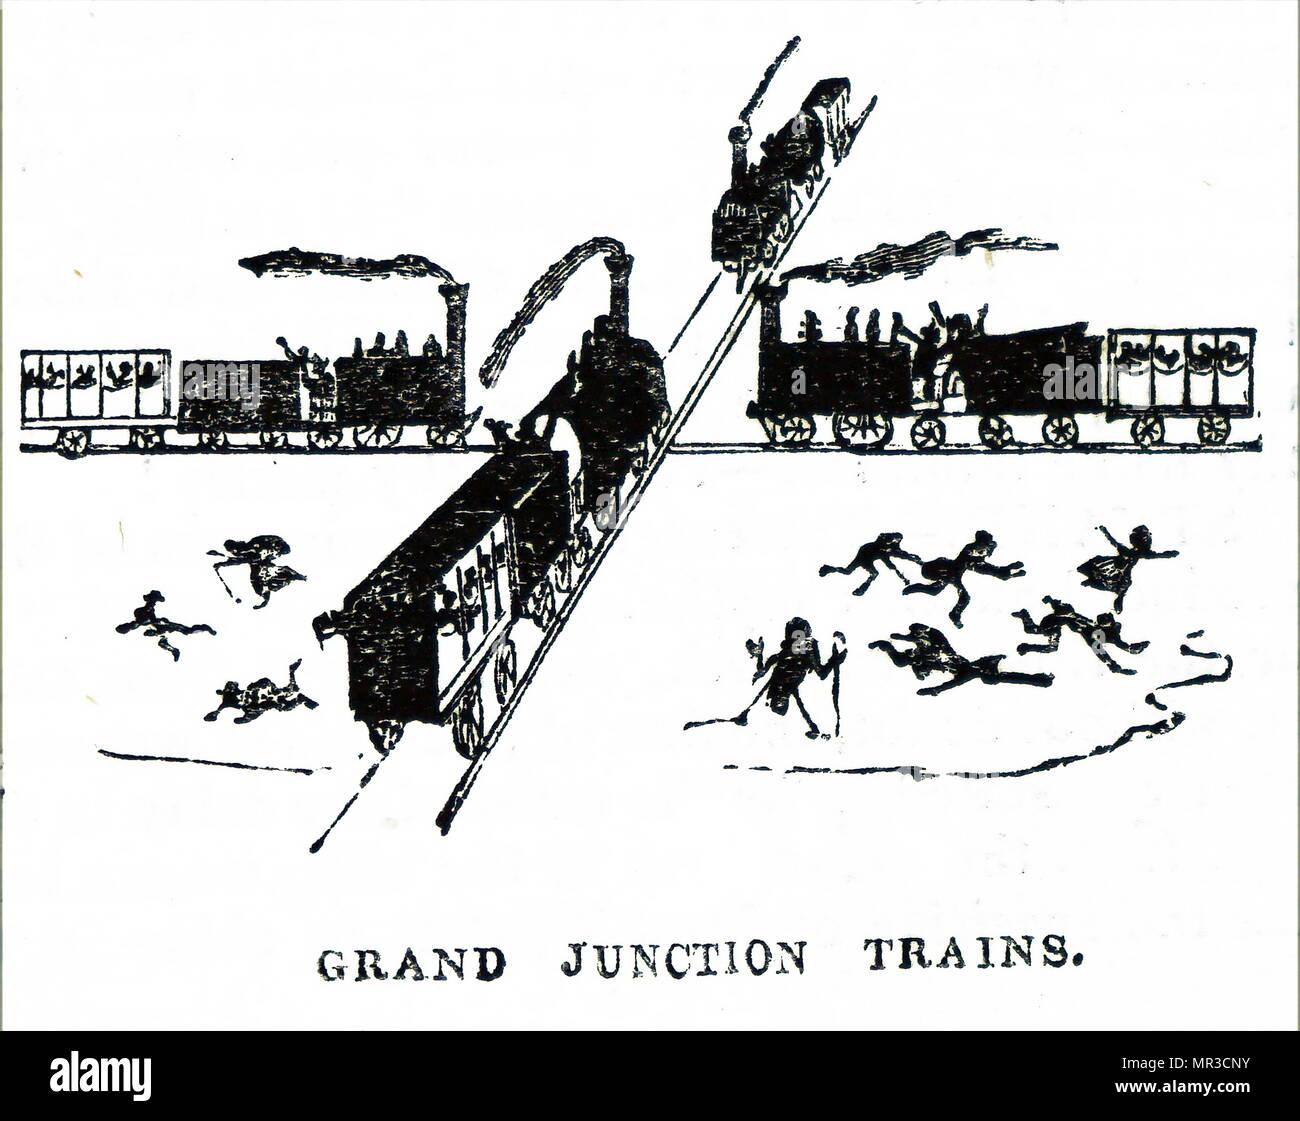 Cartoon showing overcrowded and dangerous railway junction during the early years of railway construction 1841 - Stock Image